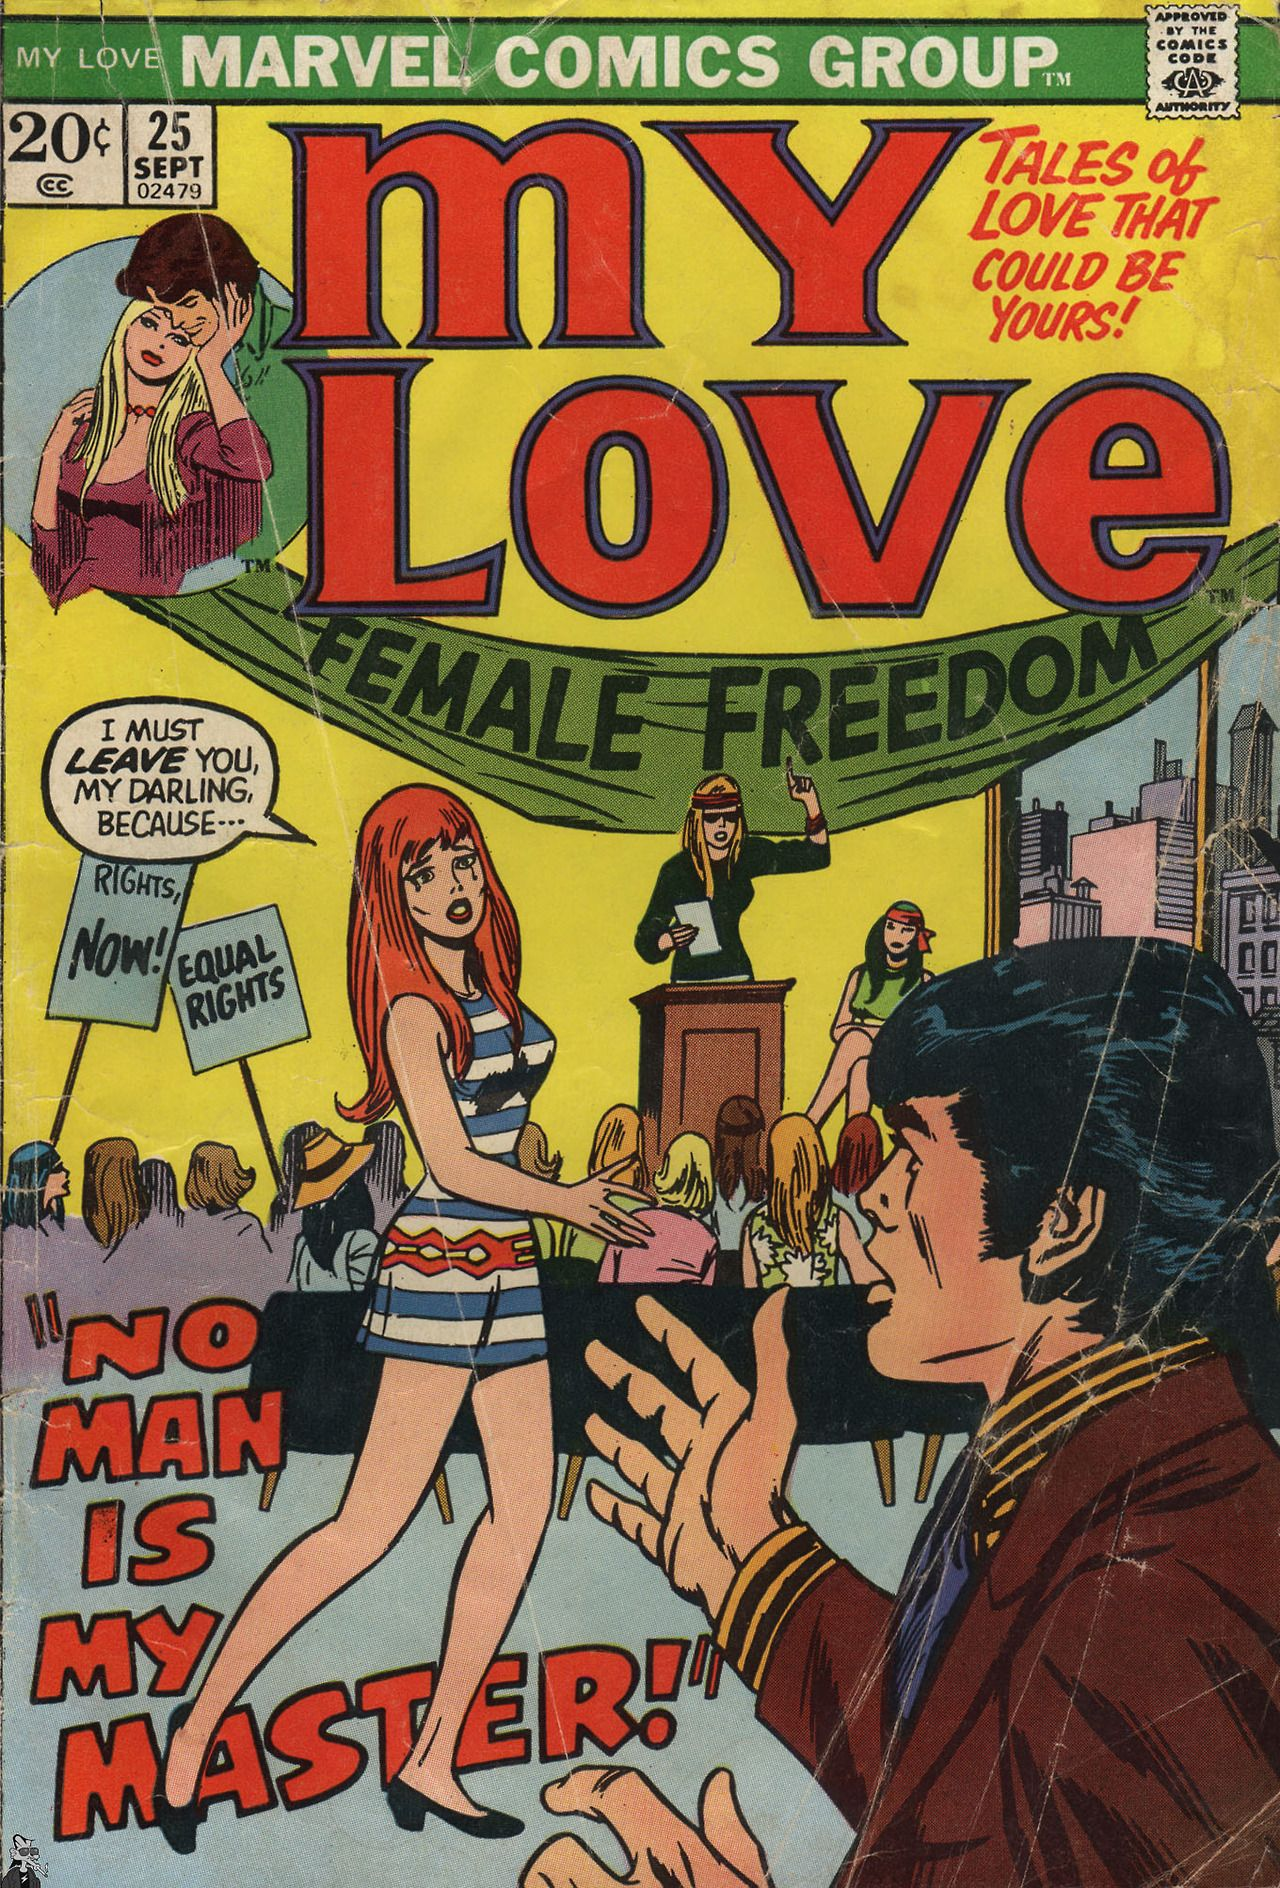 No Man Is My Master My Love N 25 September 1973 Cover By John